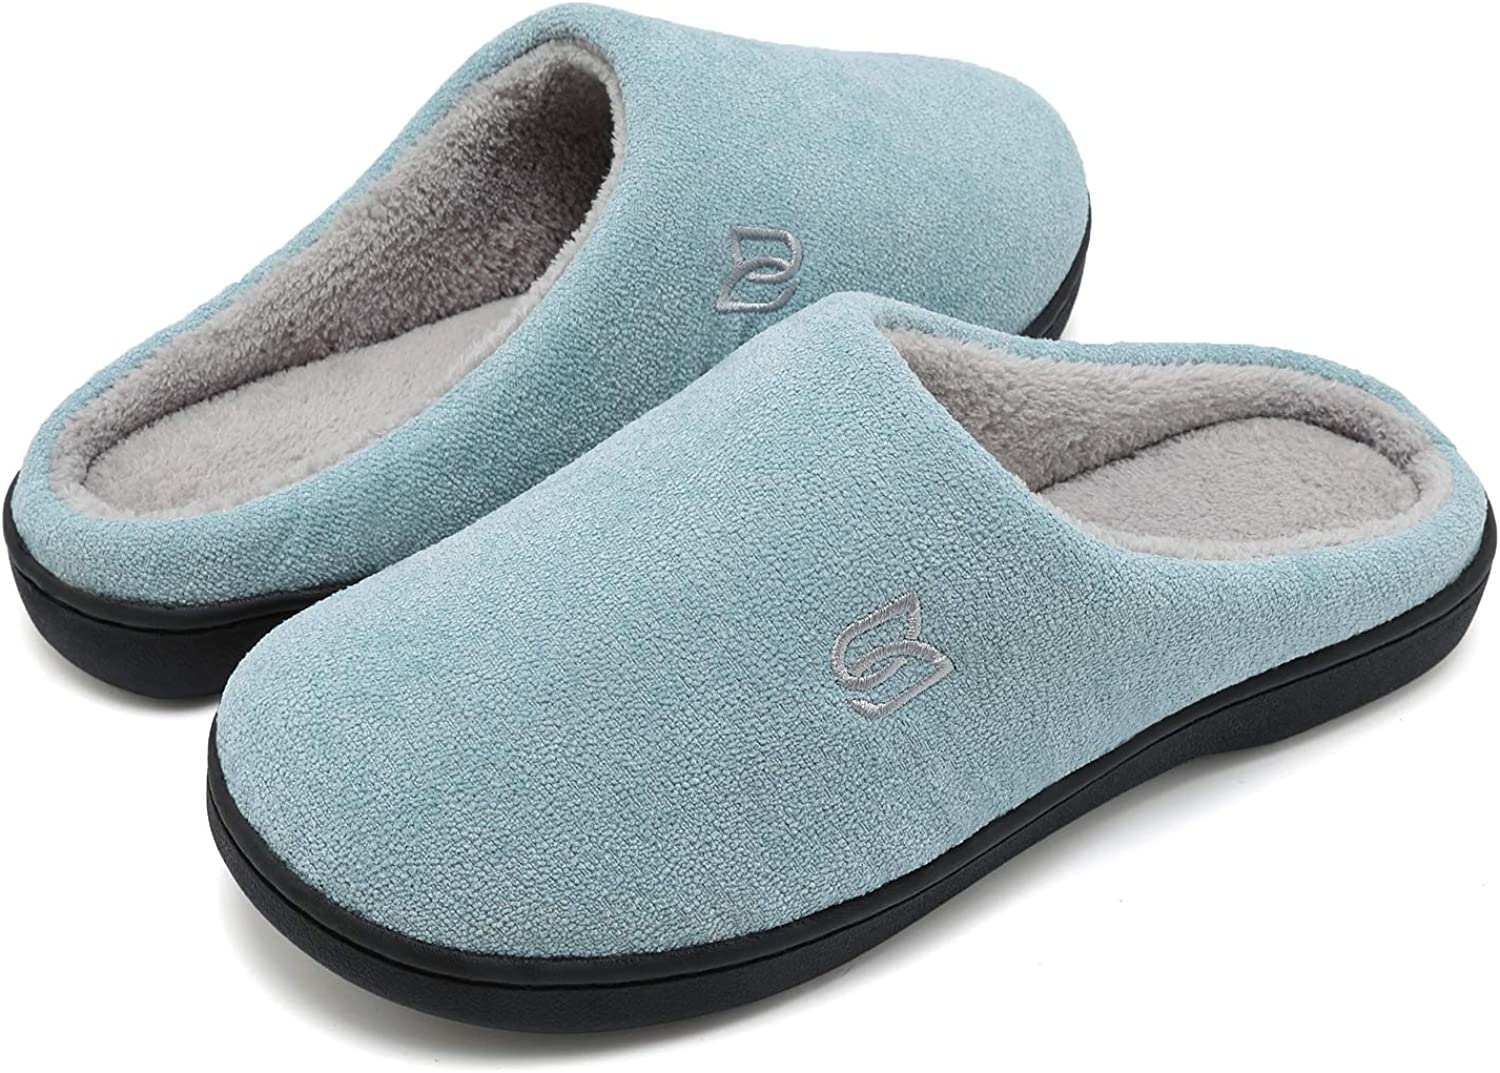 Women's Men's Memory Foam Slip On Plush Lined Comfy Max 48% OFF Slippers New color Hou